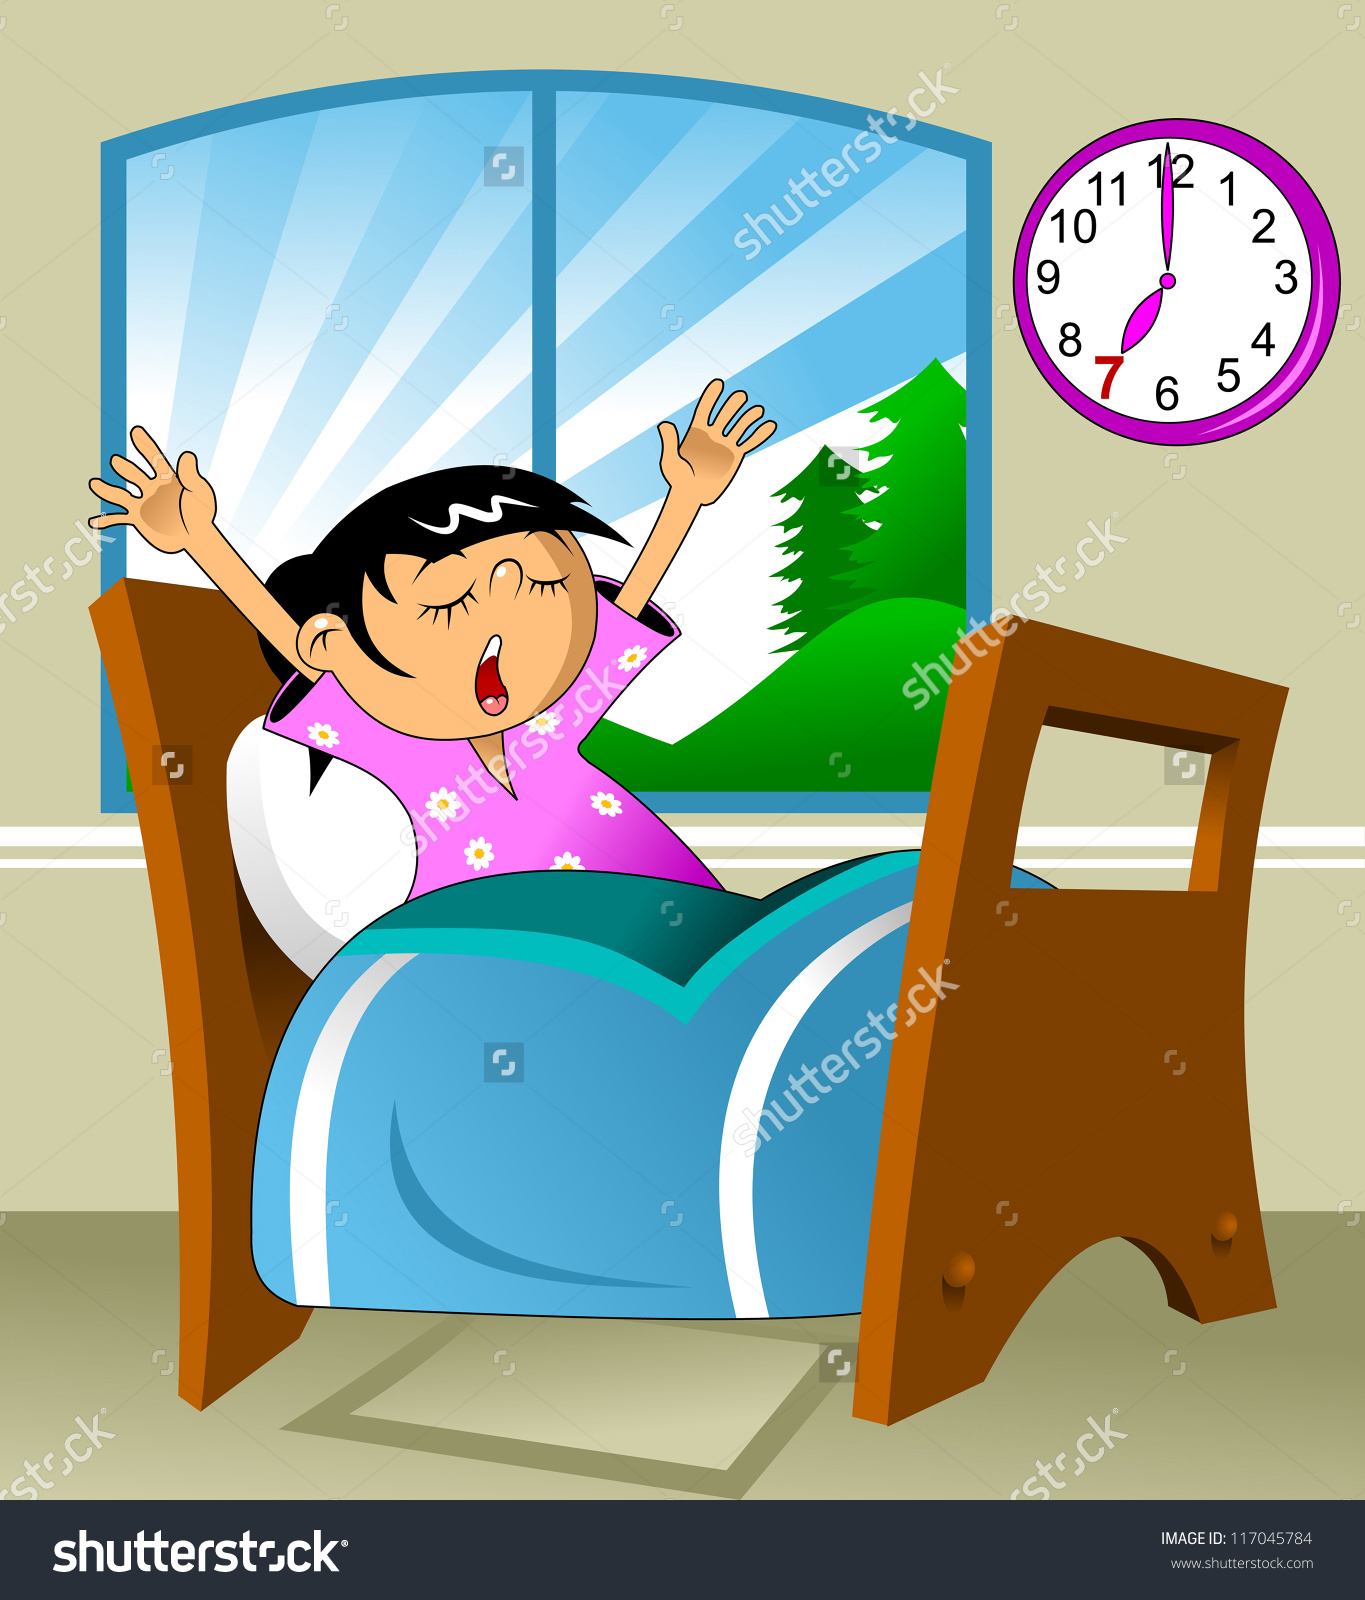 morning girl wake up clipart ... Save to a lightbox